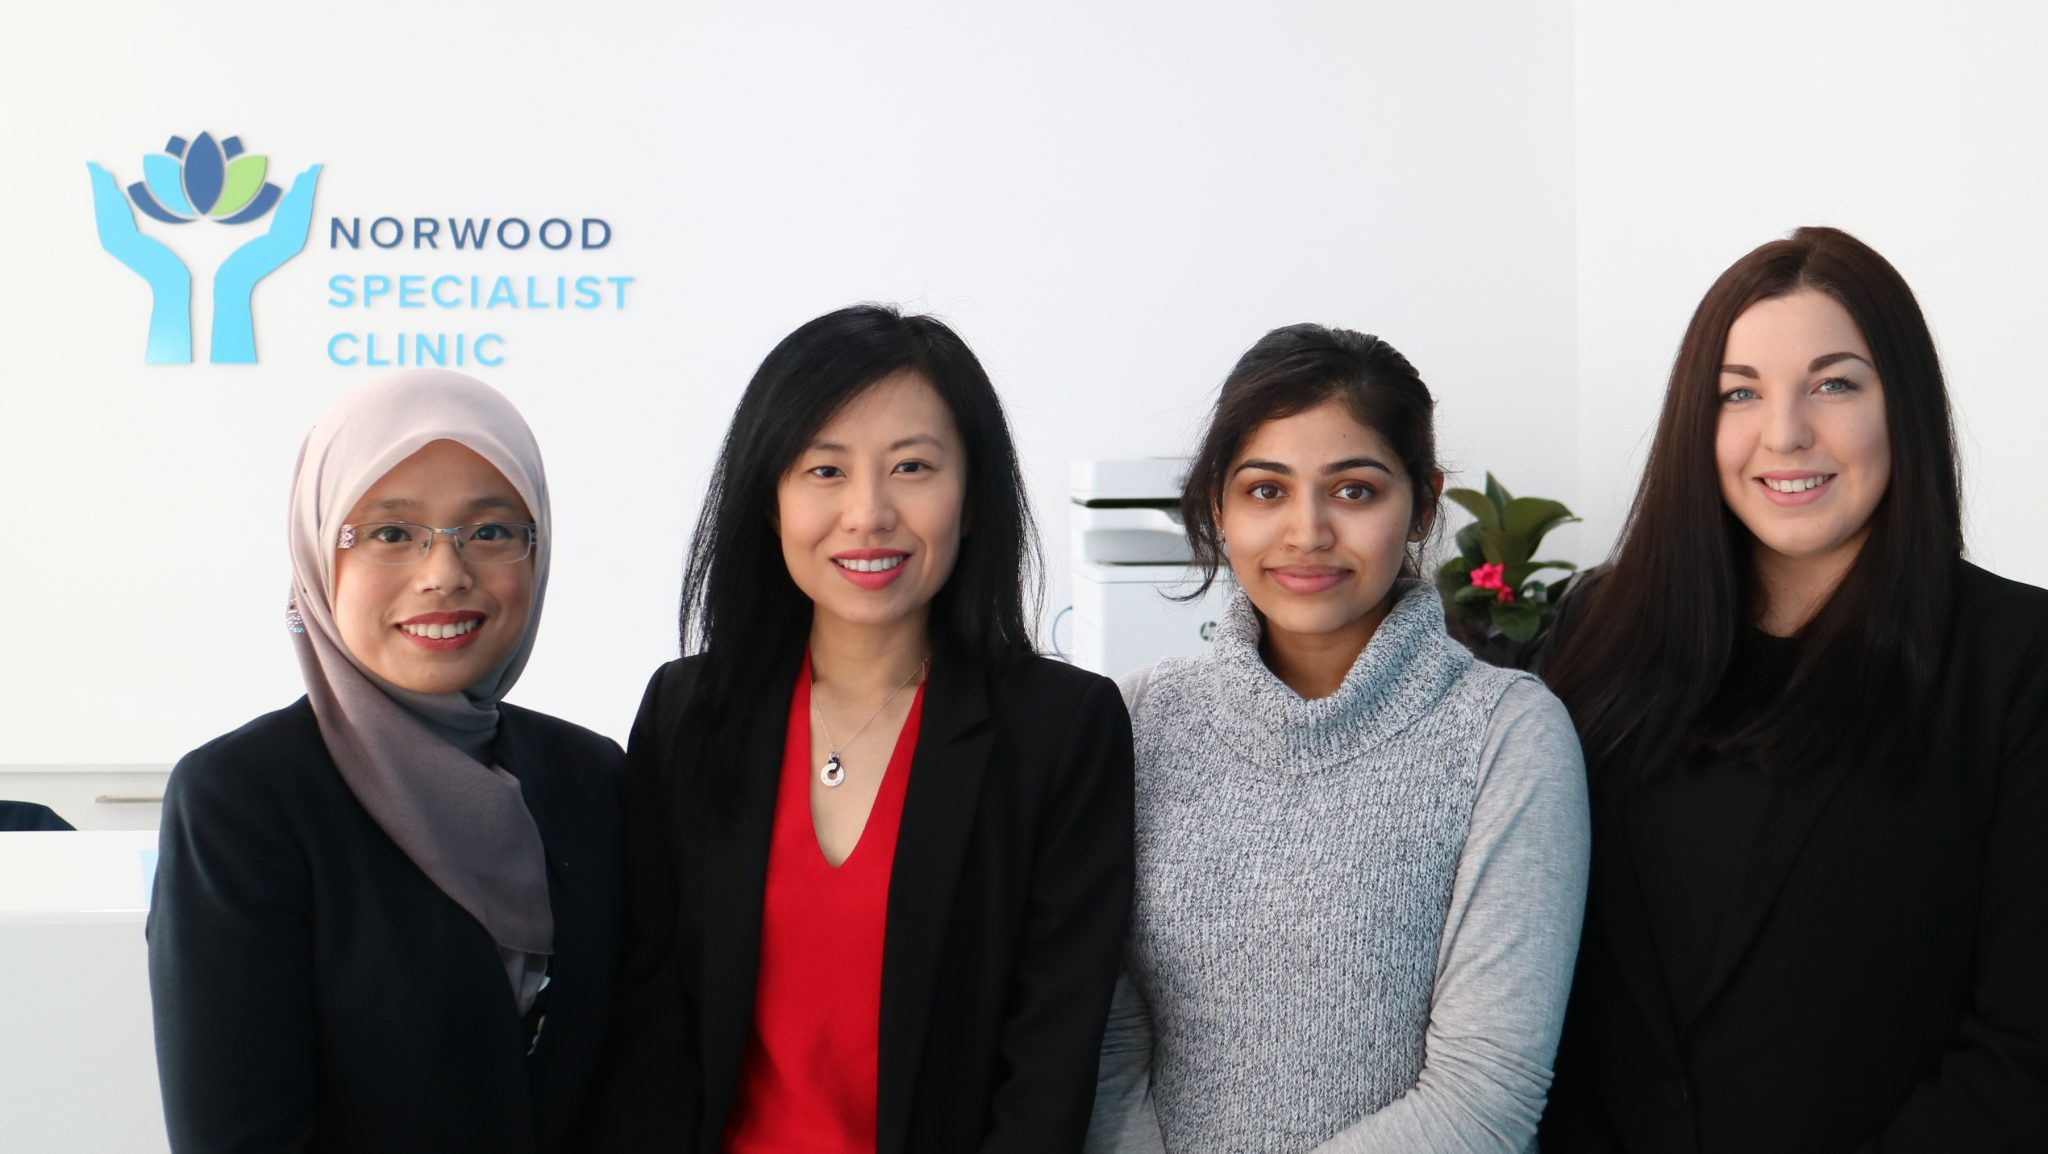 Norwood Specialist Clinic staff